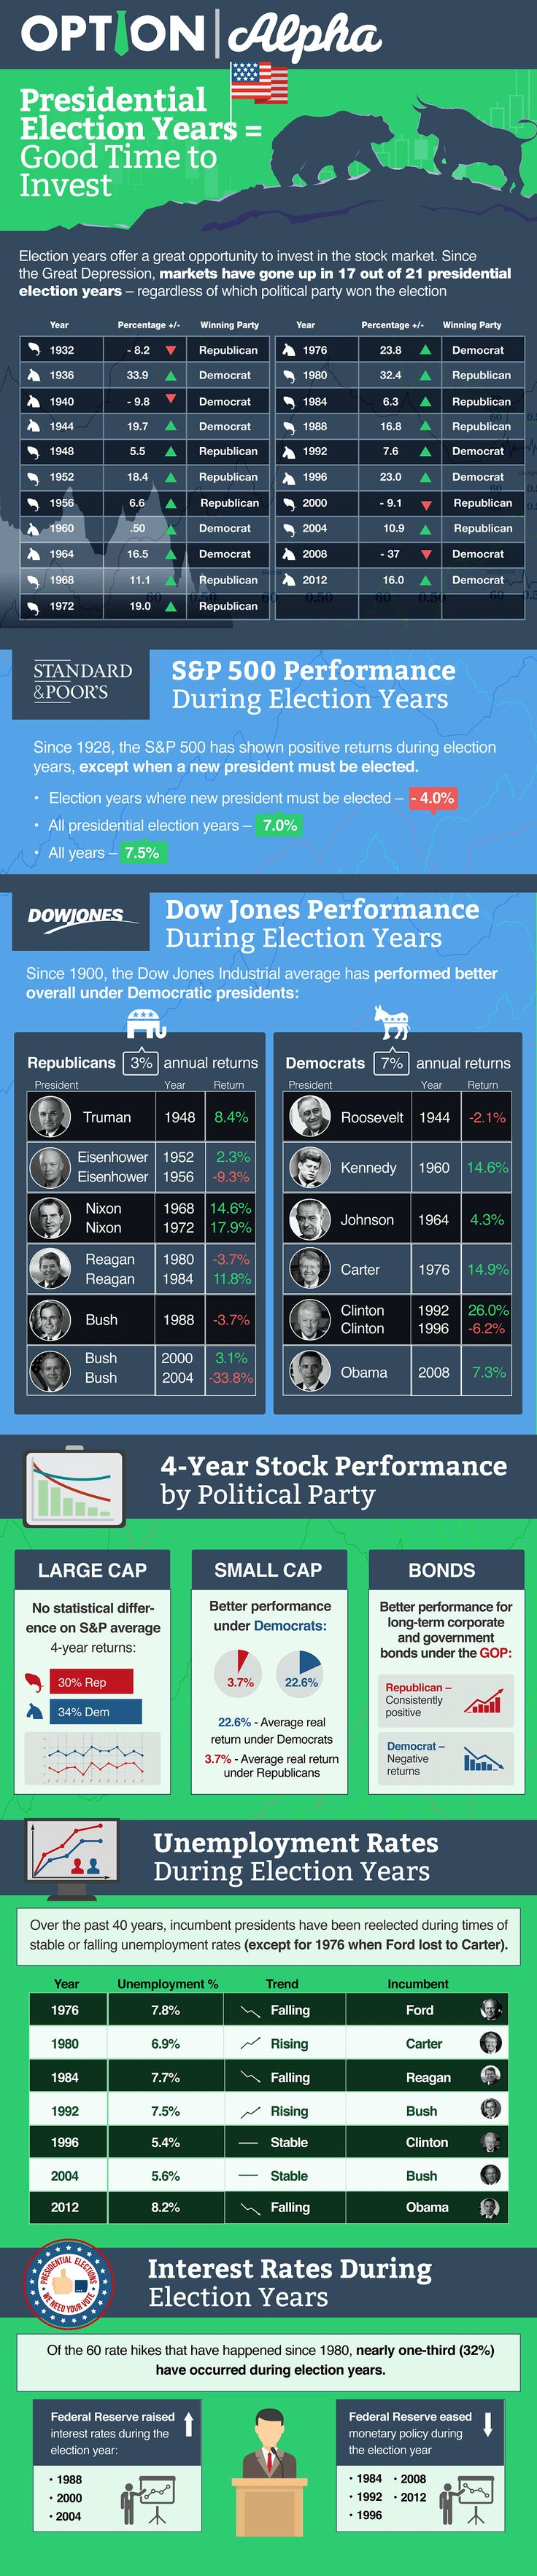 Ever since the stock market became a prominent part of the financial world, investors have wondered how presidential elections impact stock market performance. The answer is – it depends.